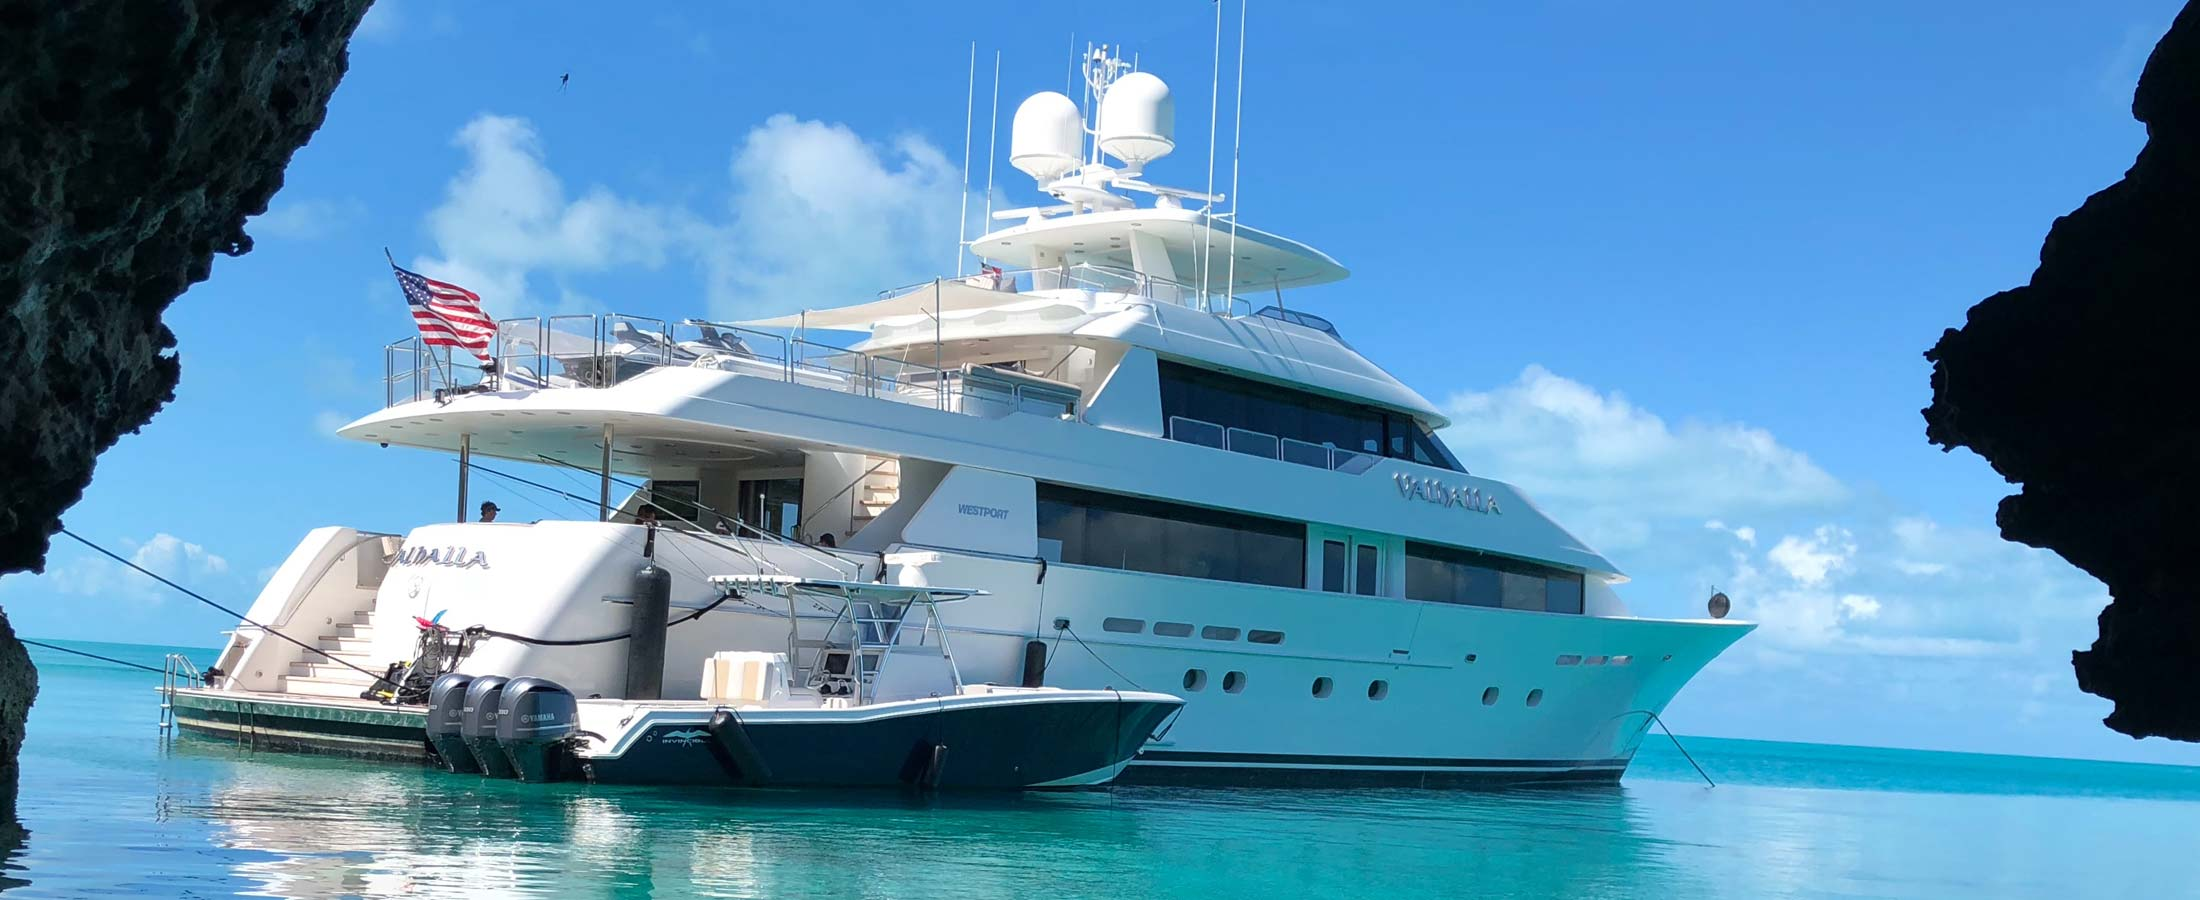 Yachts Sold - Cross Section of Yacht Sales | Westport Yachts